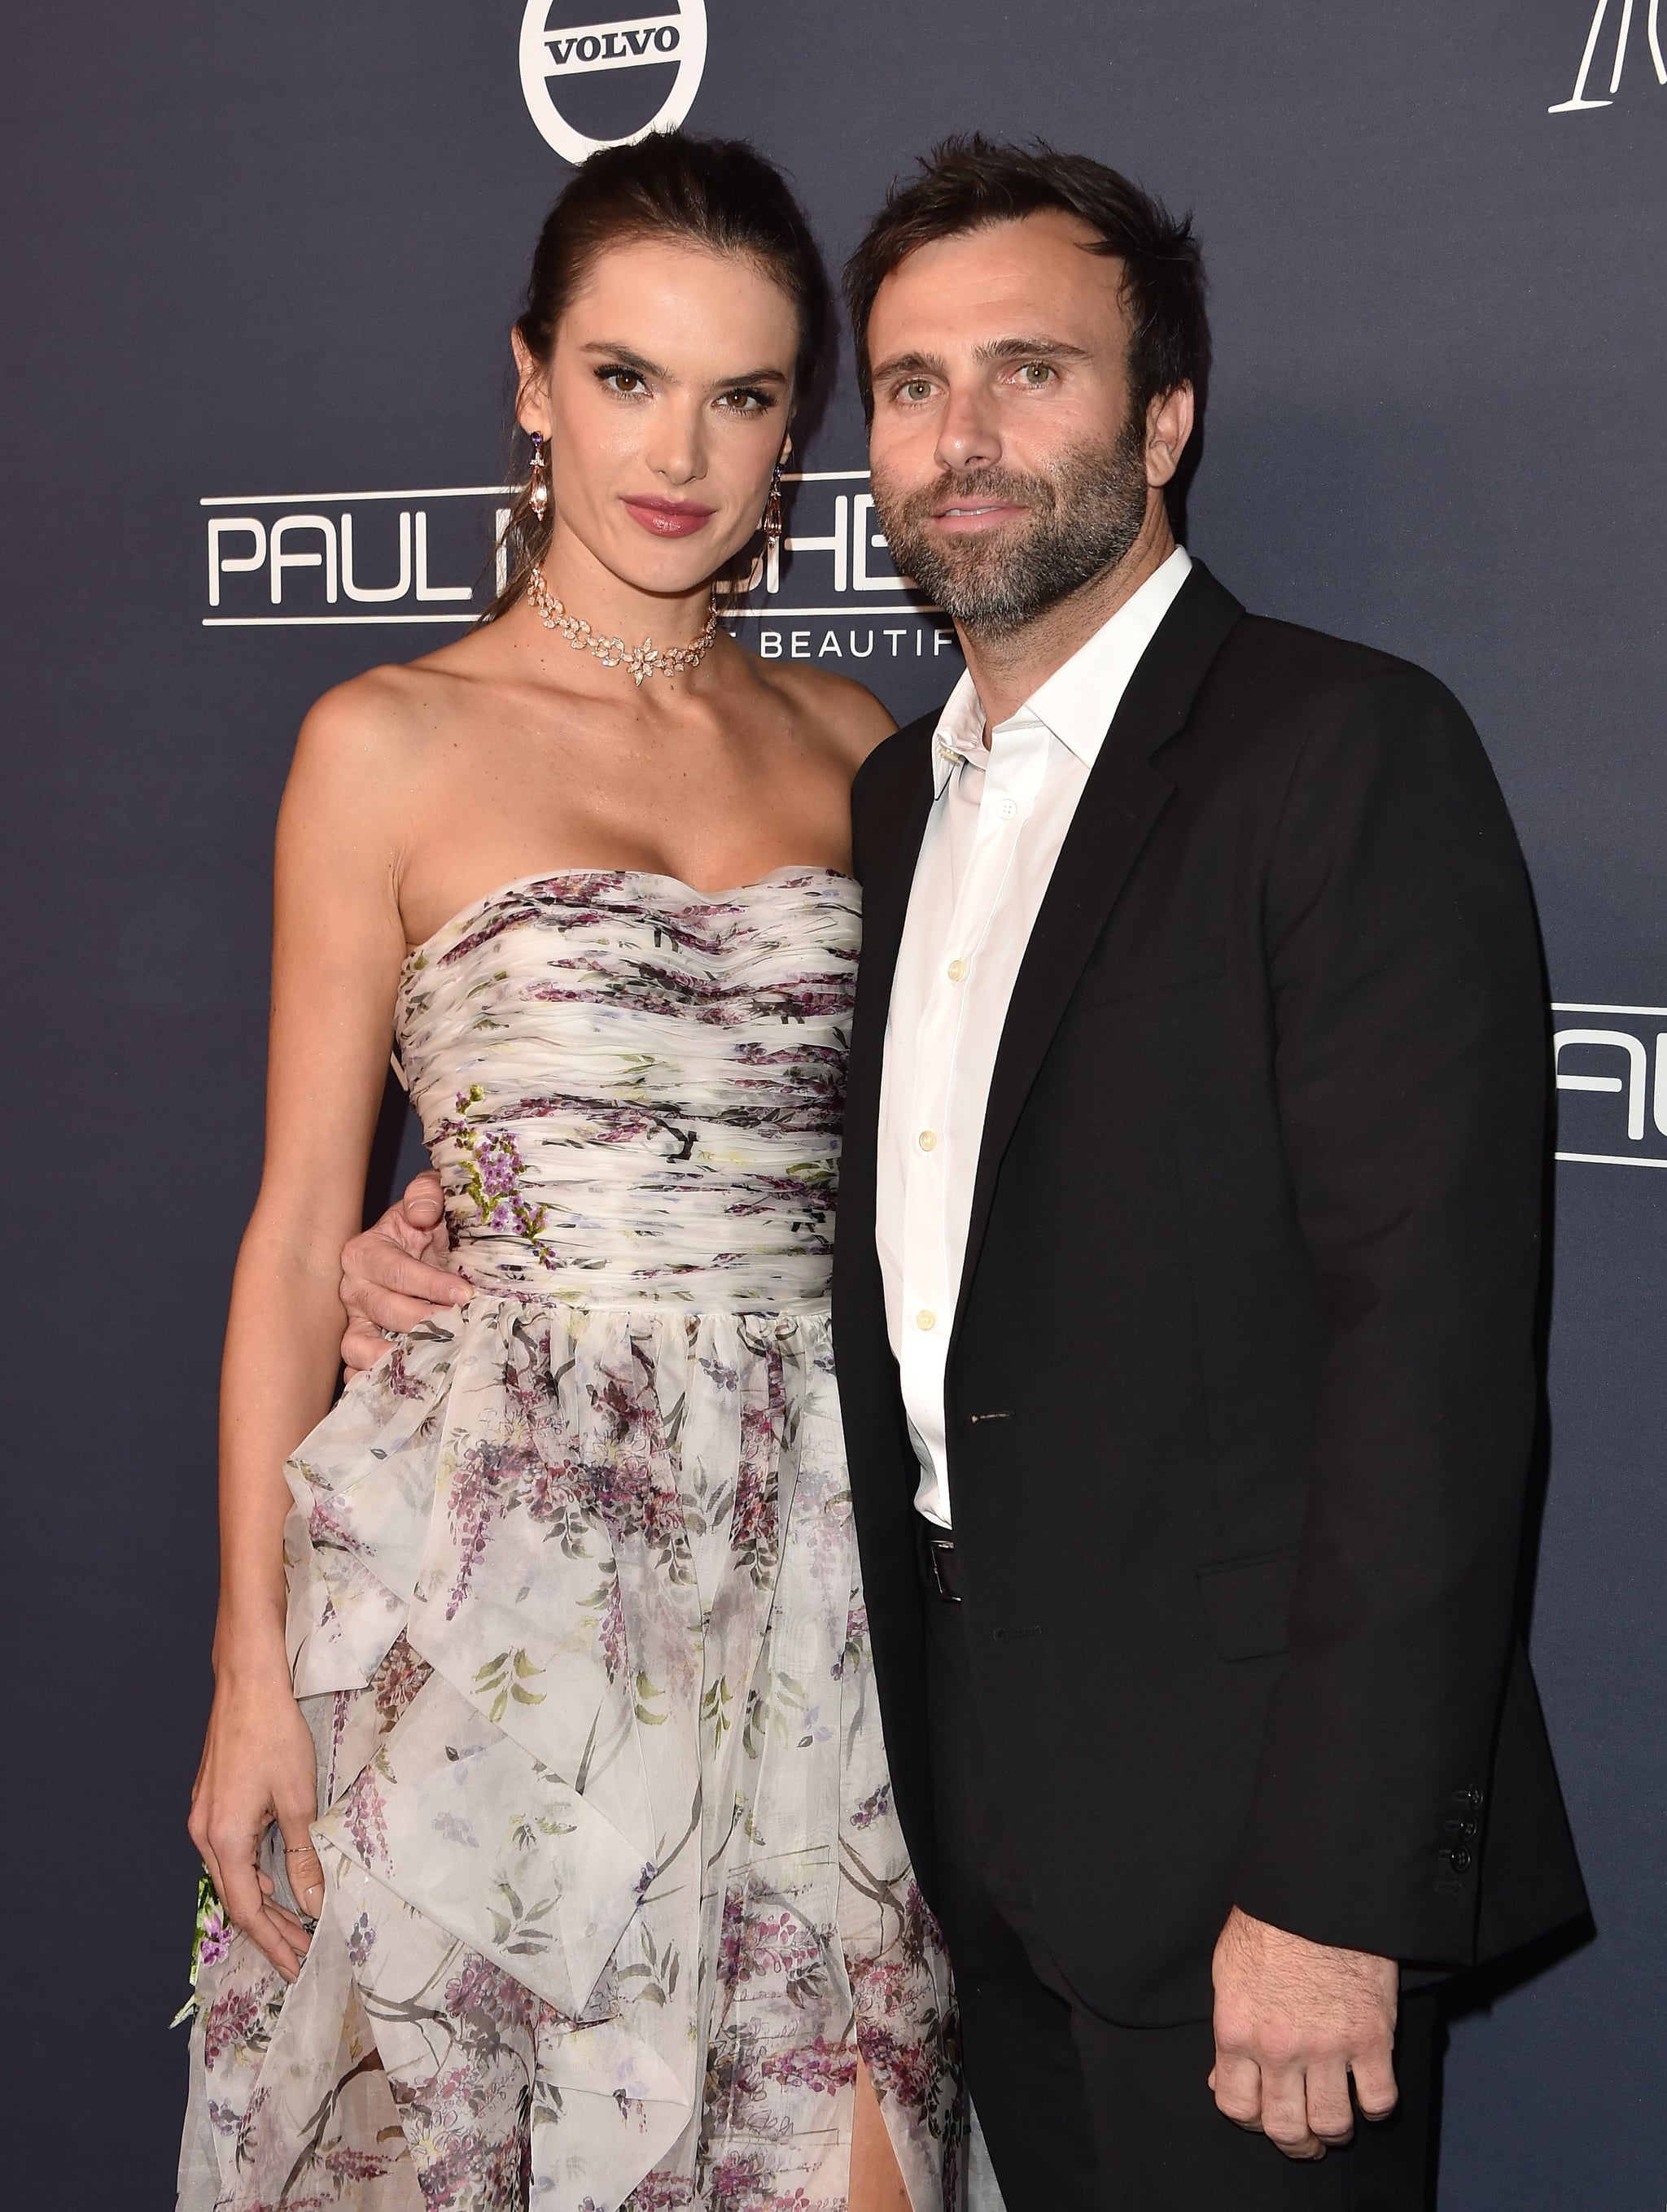 CULVER CITY, CA - NOVEMBER 11:  Model/actress Alessandra Ambrosio and Jamie Mazur attend the 2017 Baby2Baby Gala at 3LABS on November 11, 2017 in Culver City, California.  (Photo by Axelle/Bauer-Griffin/FilmMagic)